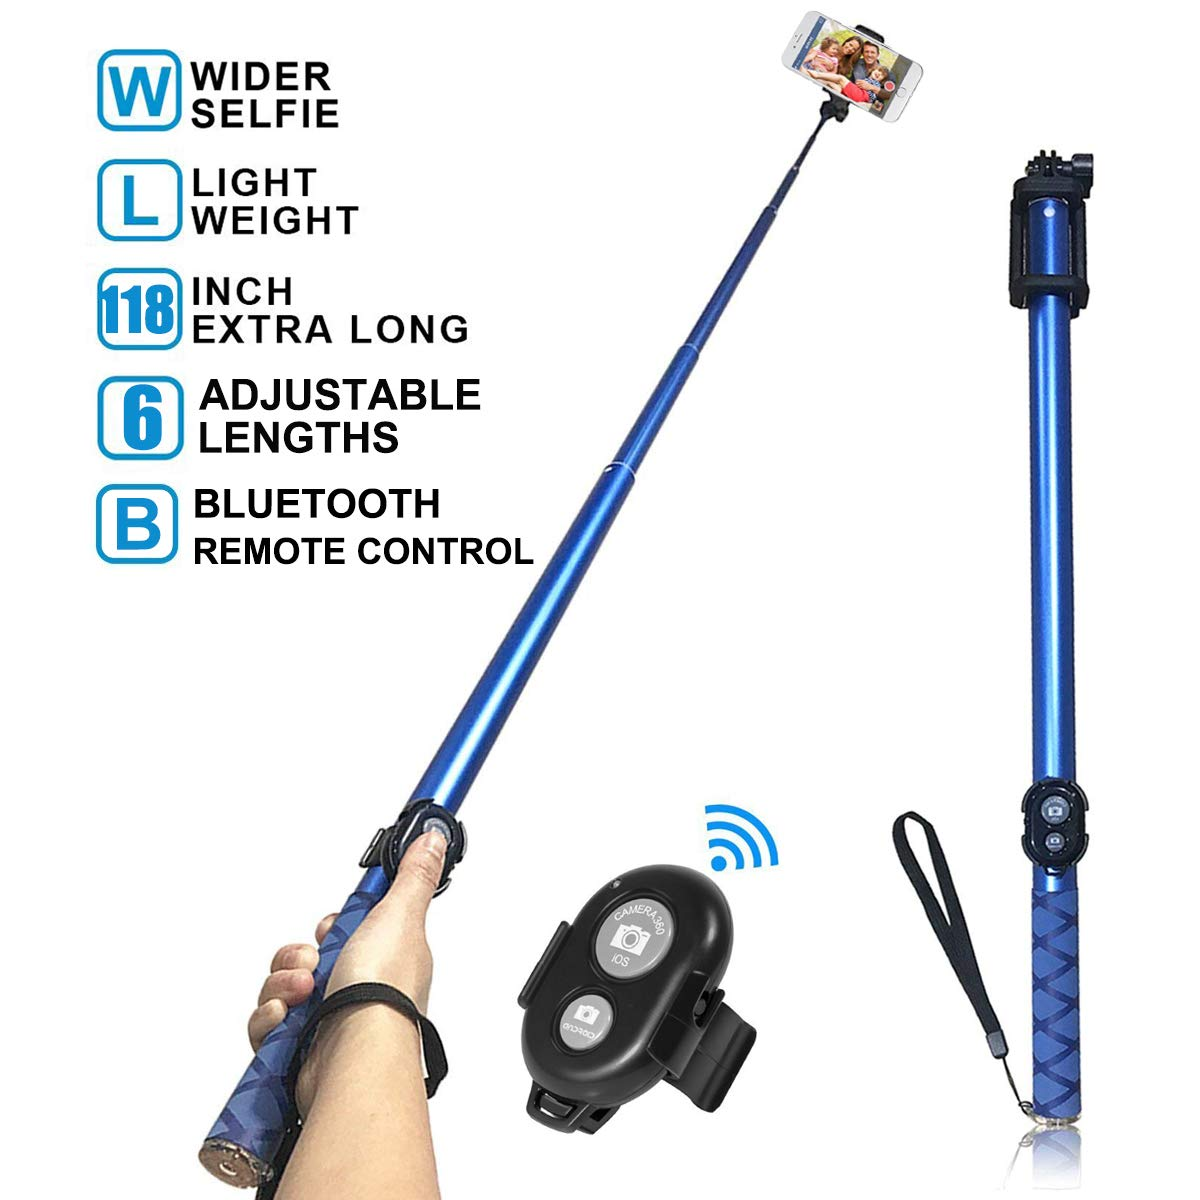 Long Selfie Stick,Extendable Foldable Selfie Stick with Wireless Bluetooth Remote and Adjustable Holder for iPhone,Samsung and Android all Smartphone Maximum 3 Meter(118-Inch) Length